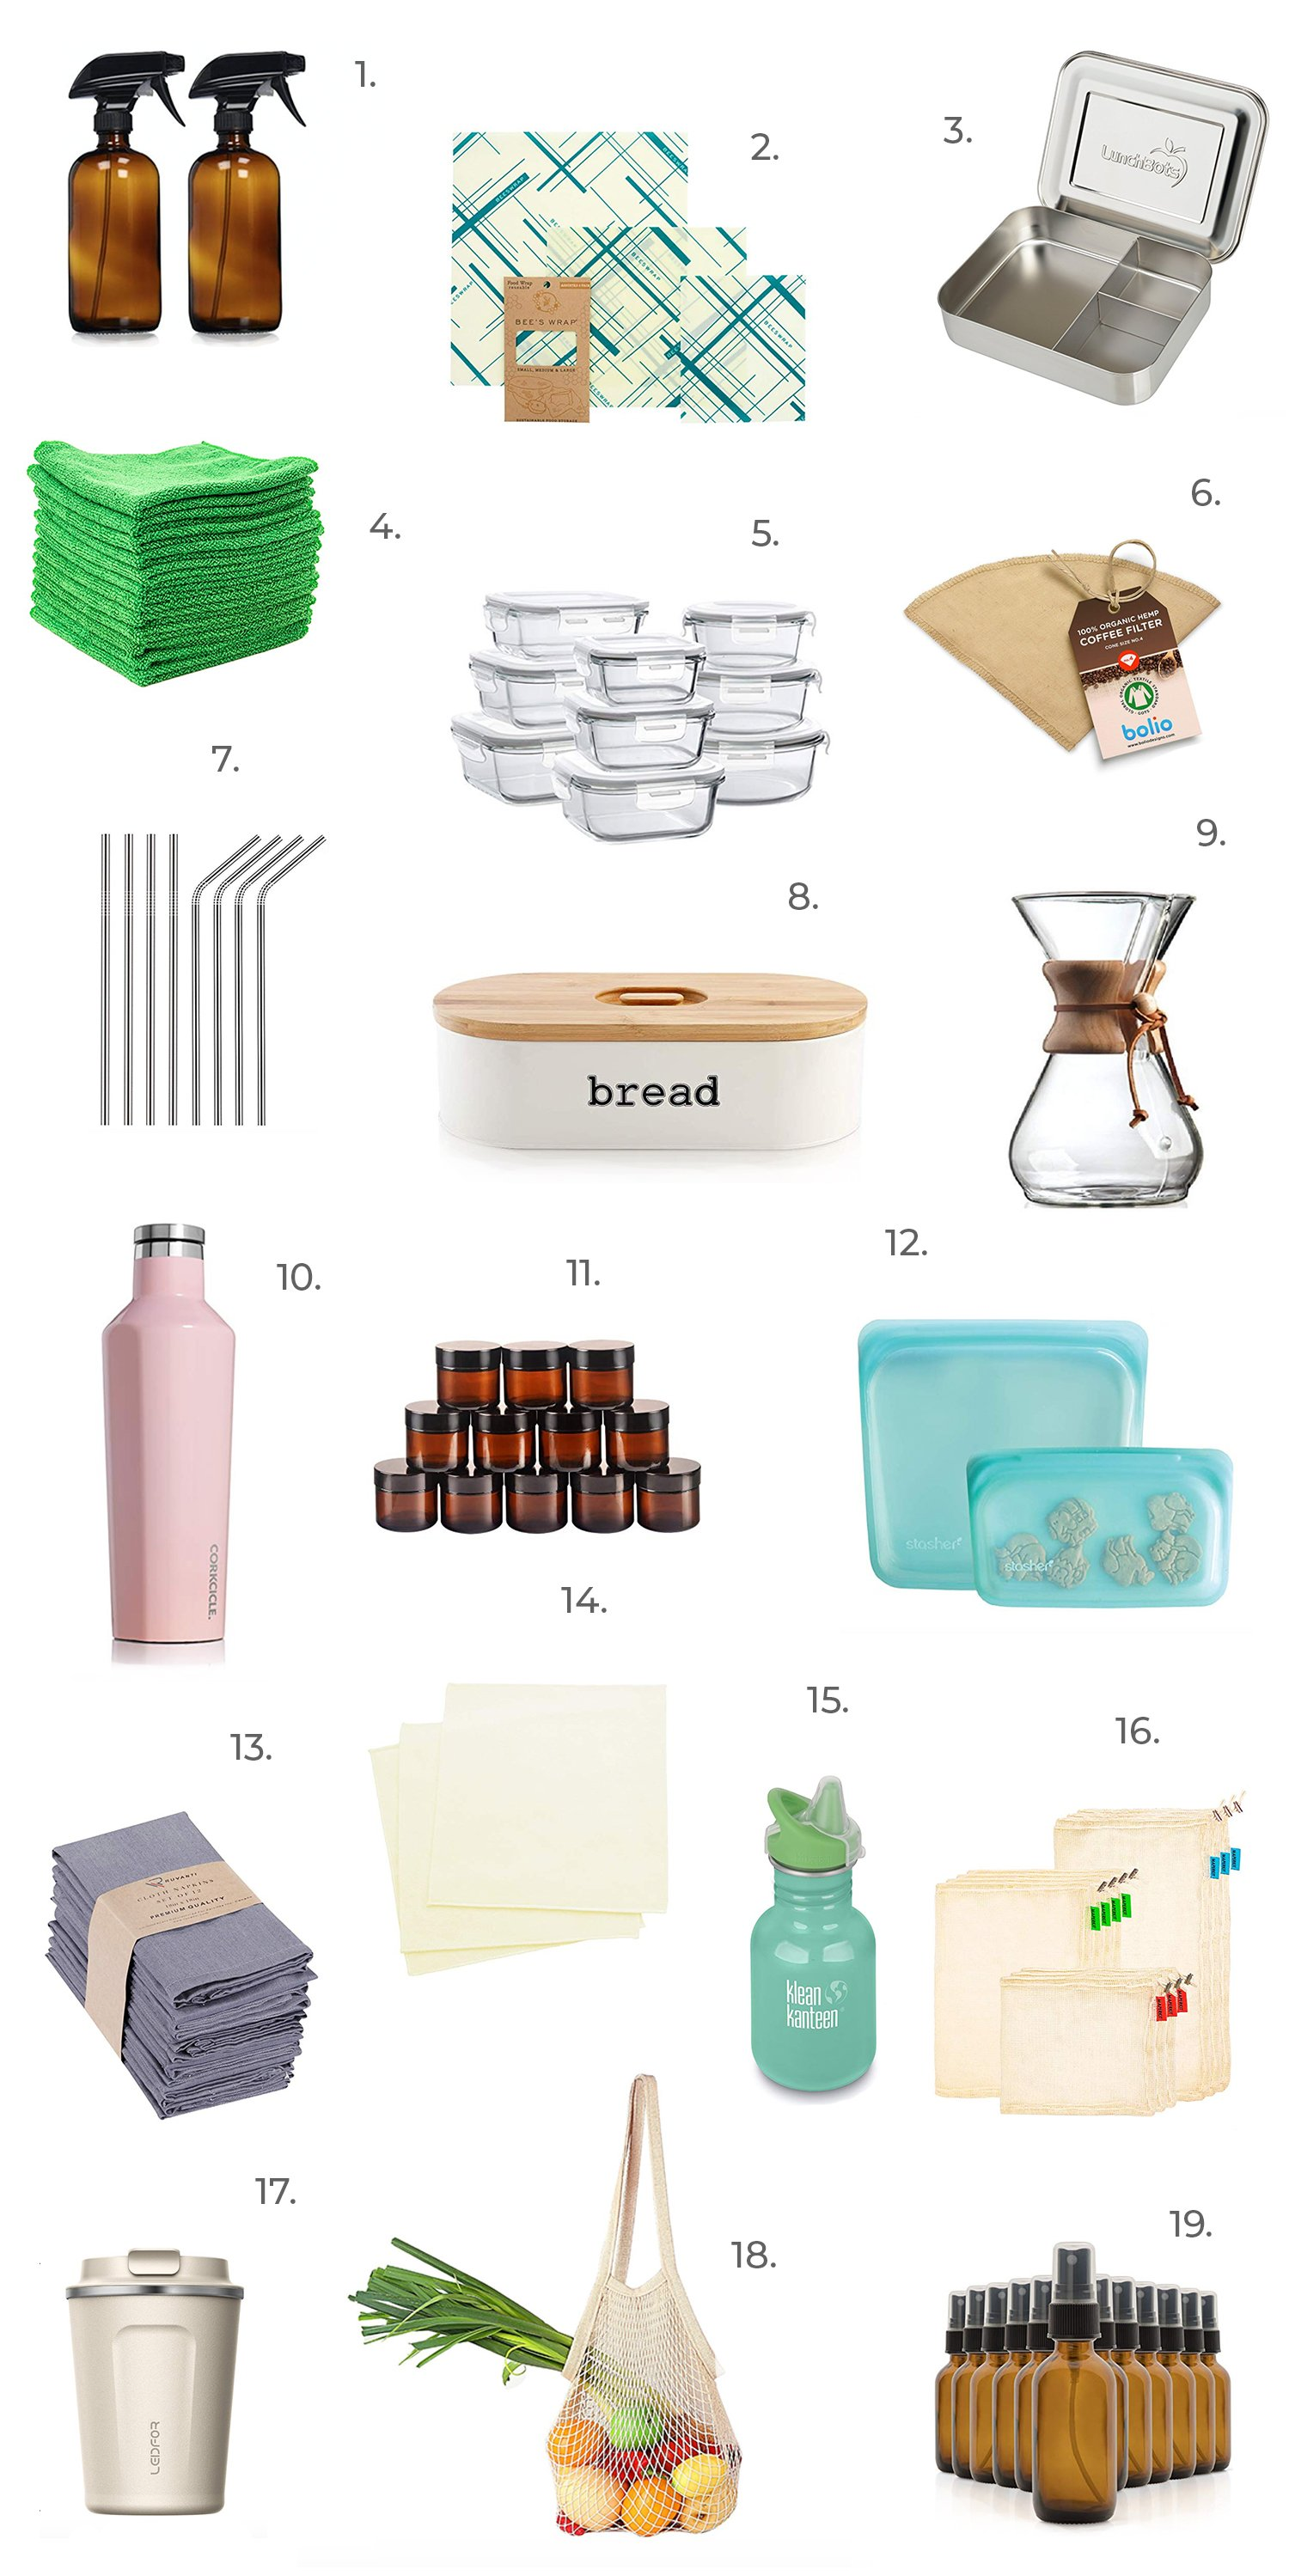 8de18f19623e It s been a bit of a process the past few years switching over to more and  more reusable items in our household